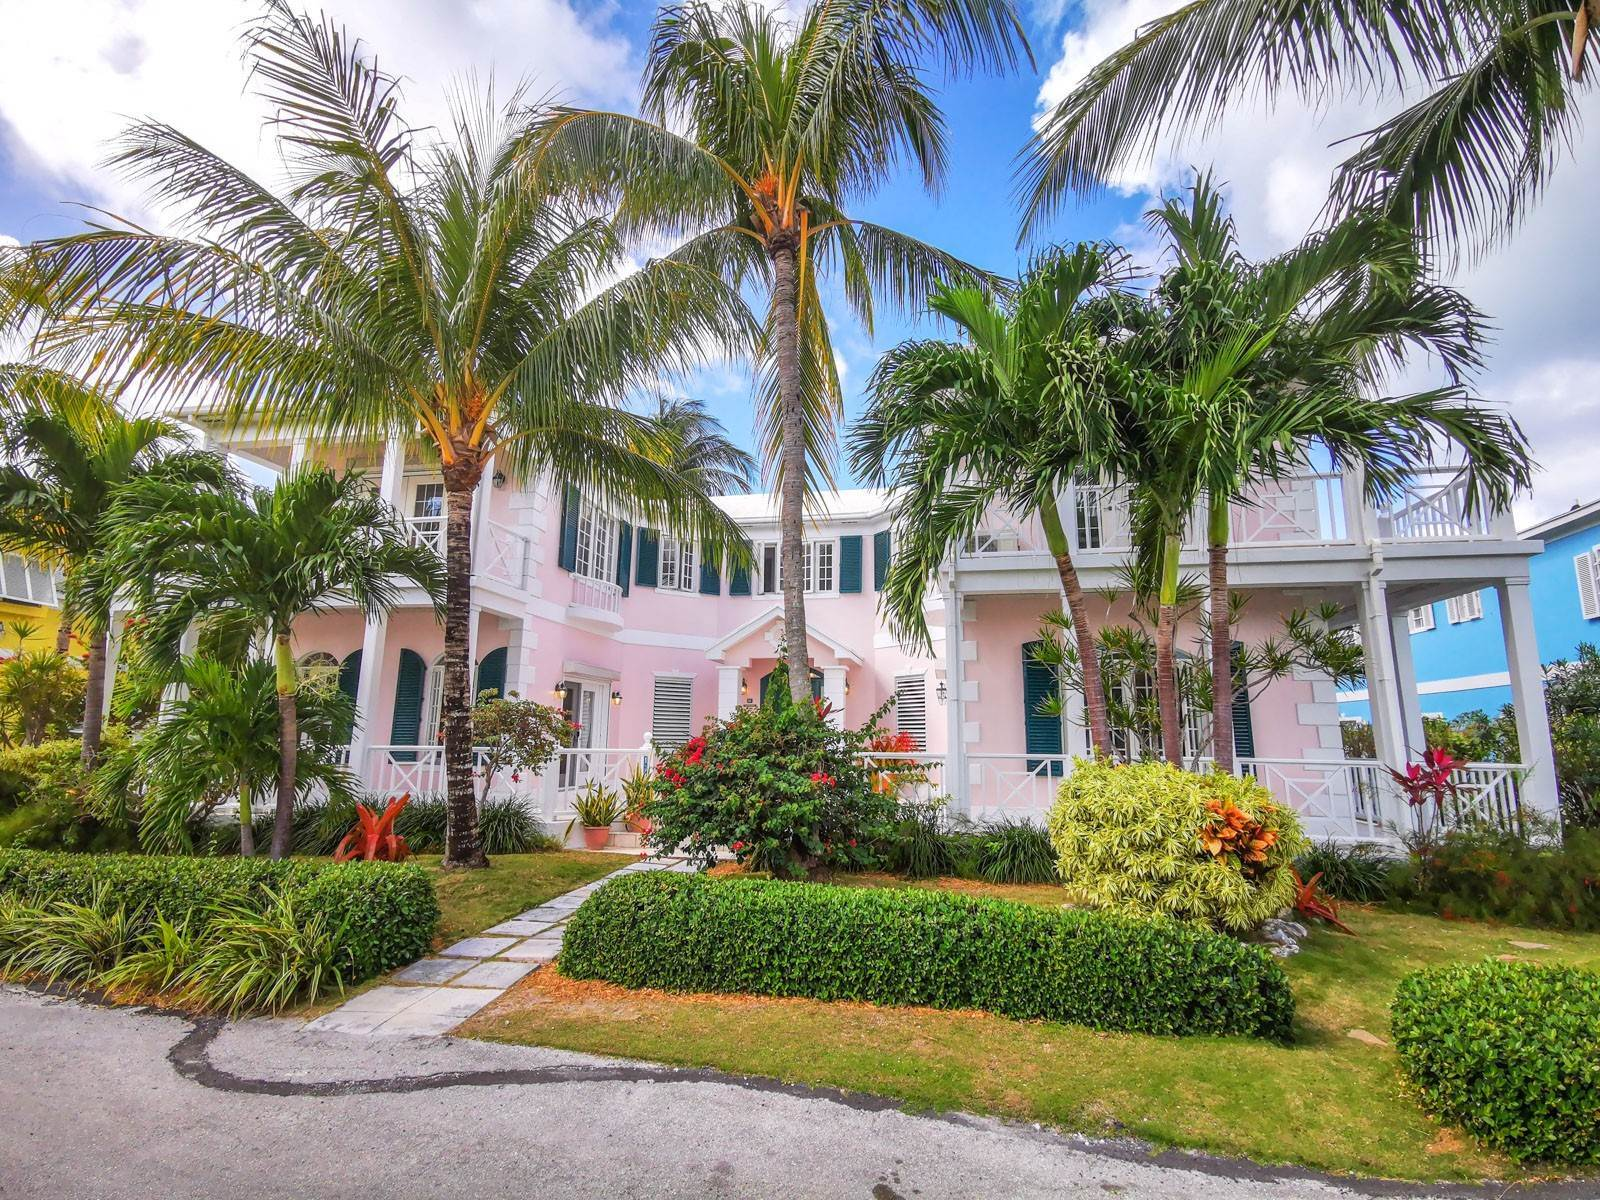 Single Family Homes for Rent at #53 Sandyport Residence - MLS 43063 Sandyport, Cable Beach, Nassau And Paradise Island Bahamas